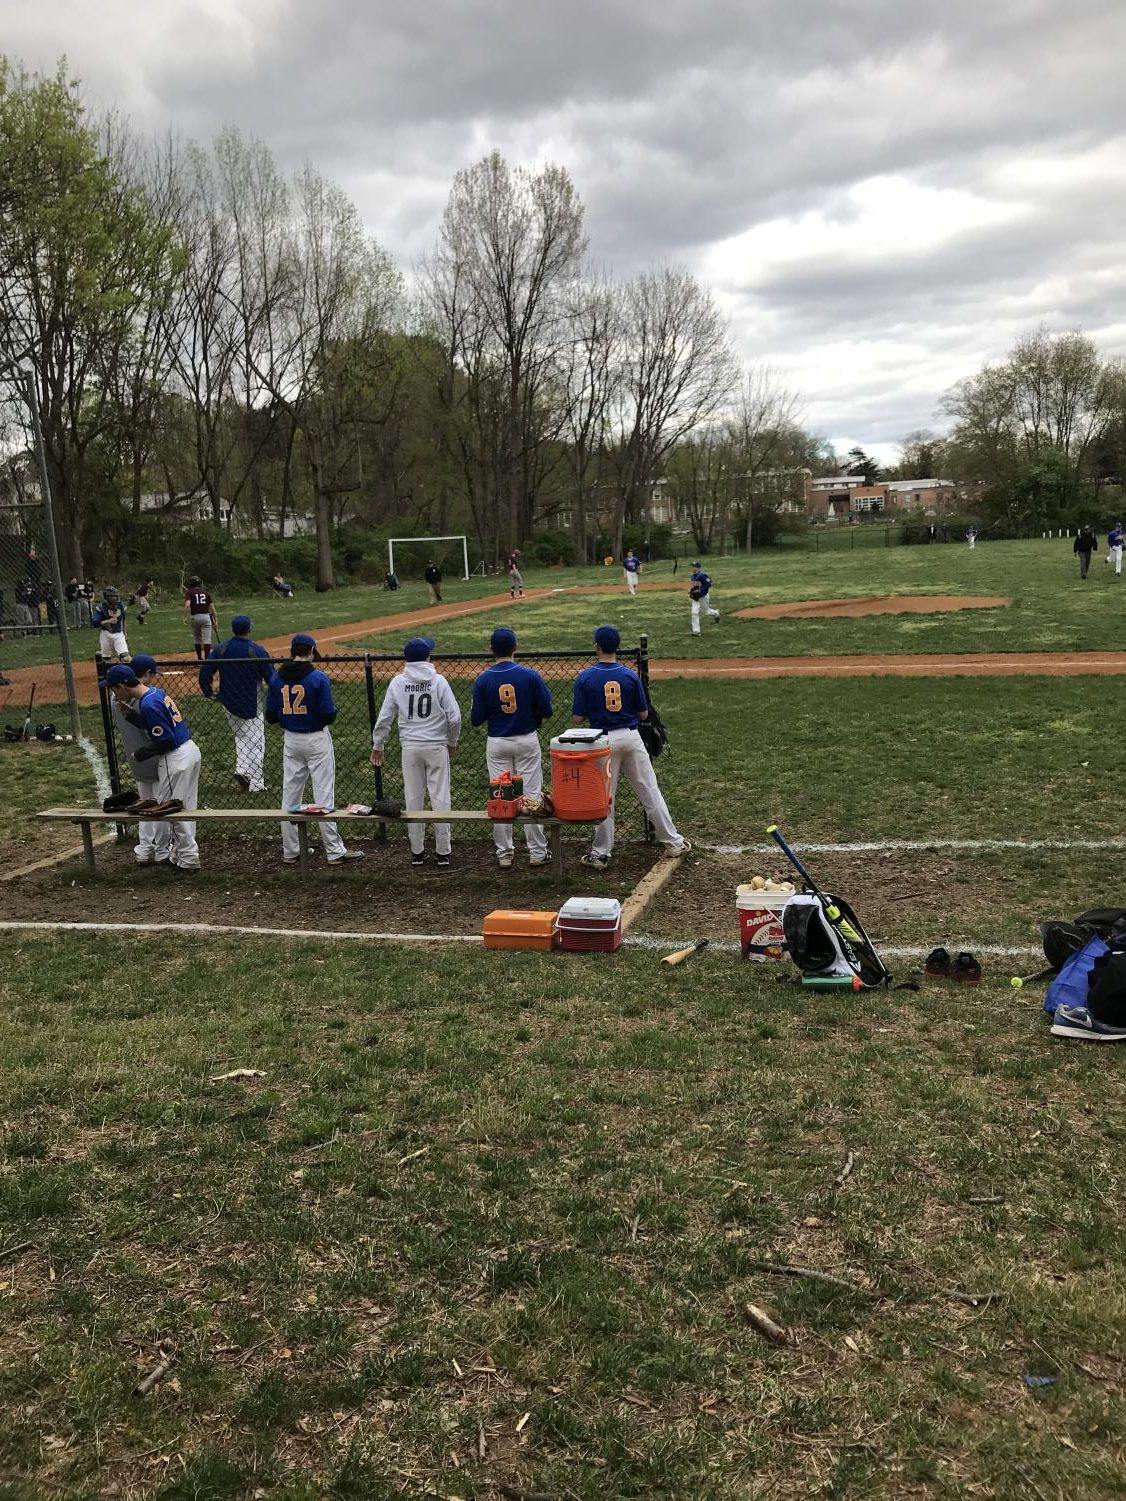 The boys varsity baseball team defeated the Burke Bengal Tigers this past Monday, 12-0.